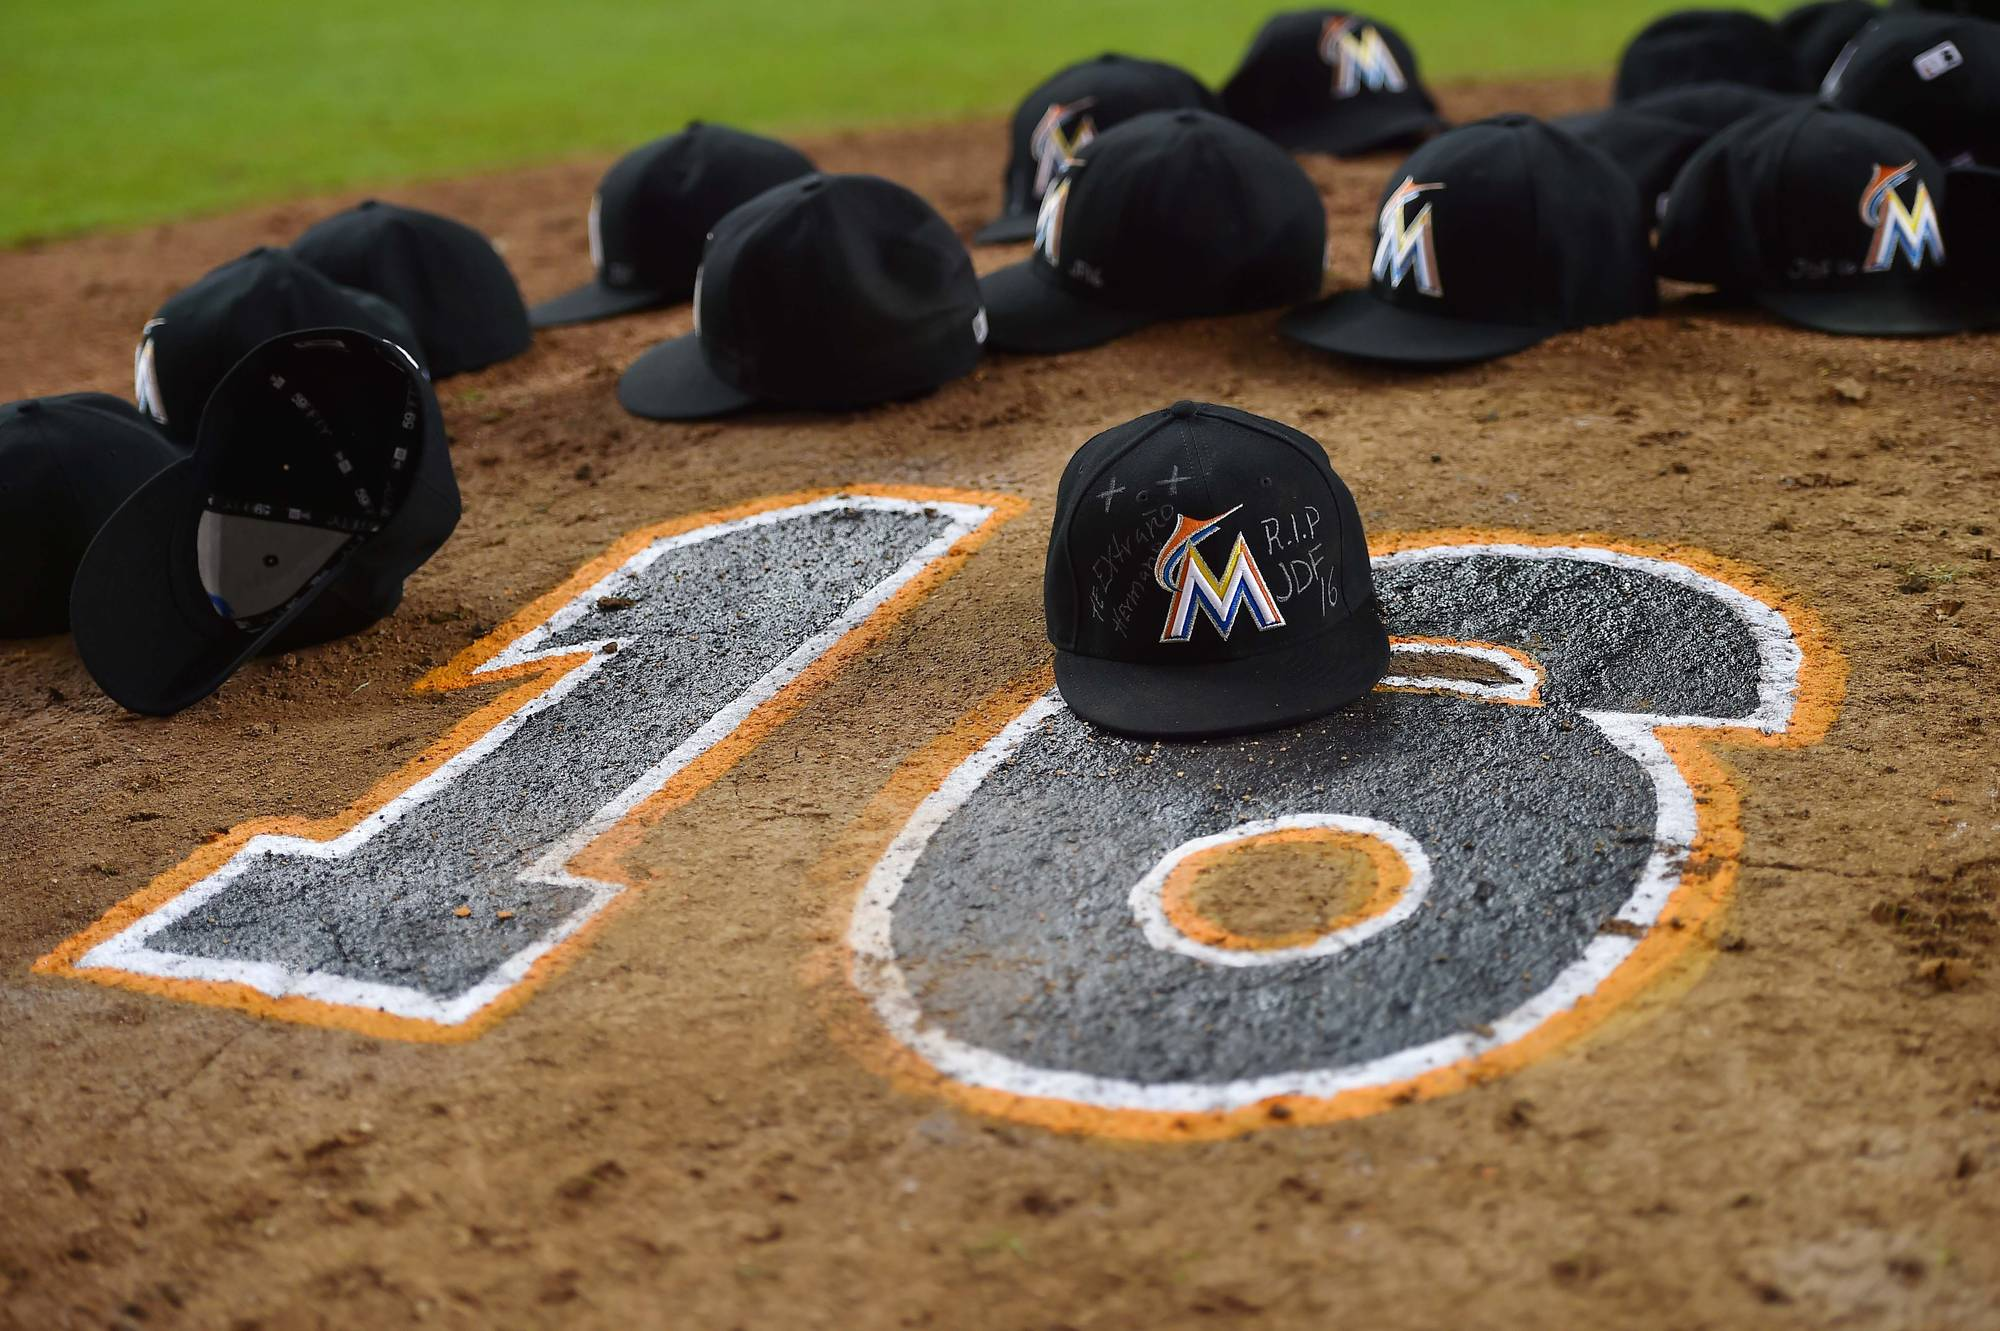 Celebrating the Life of Jose Fernandez